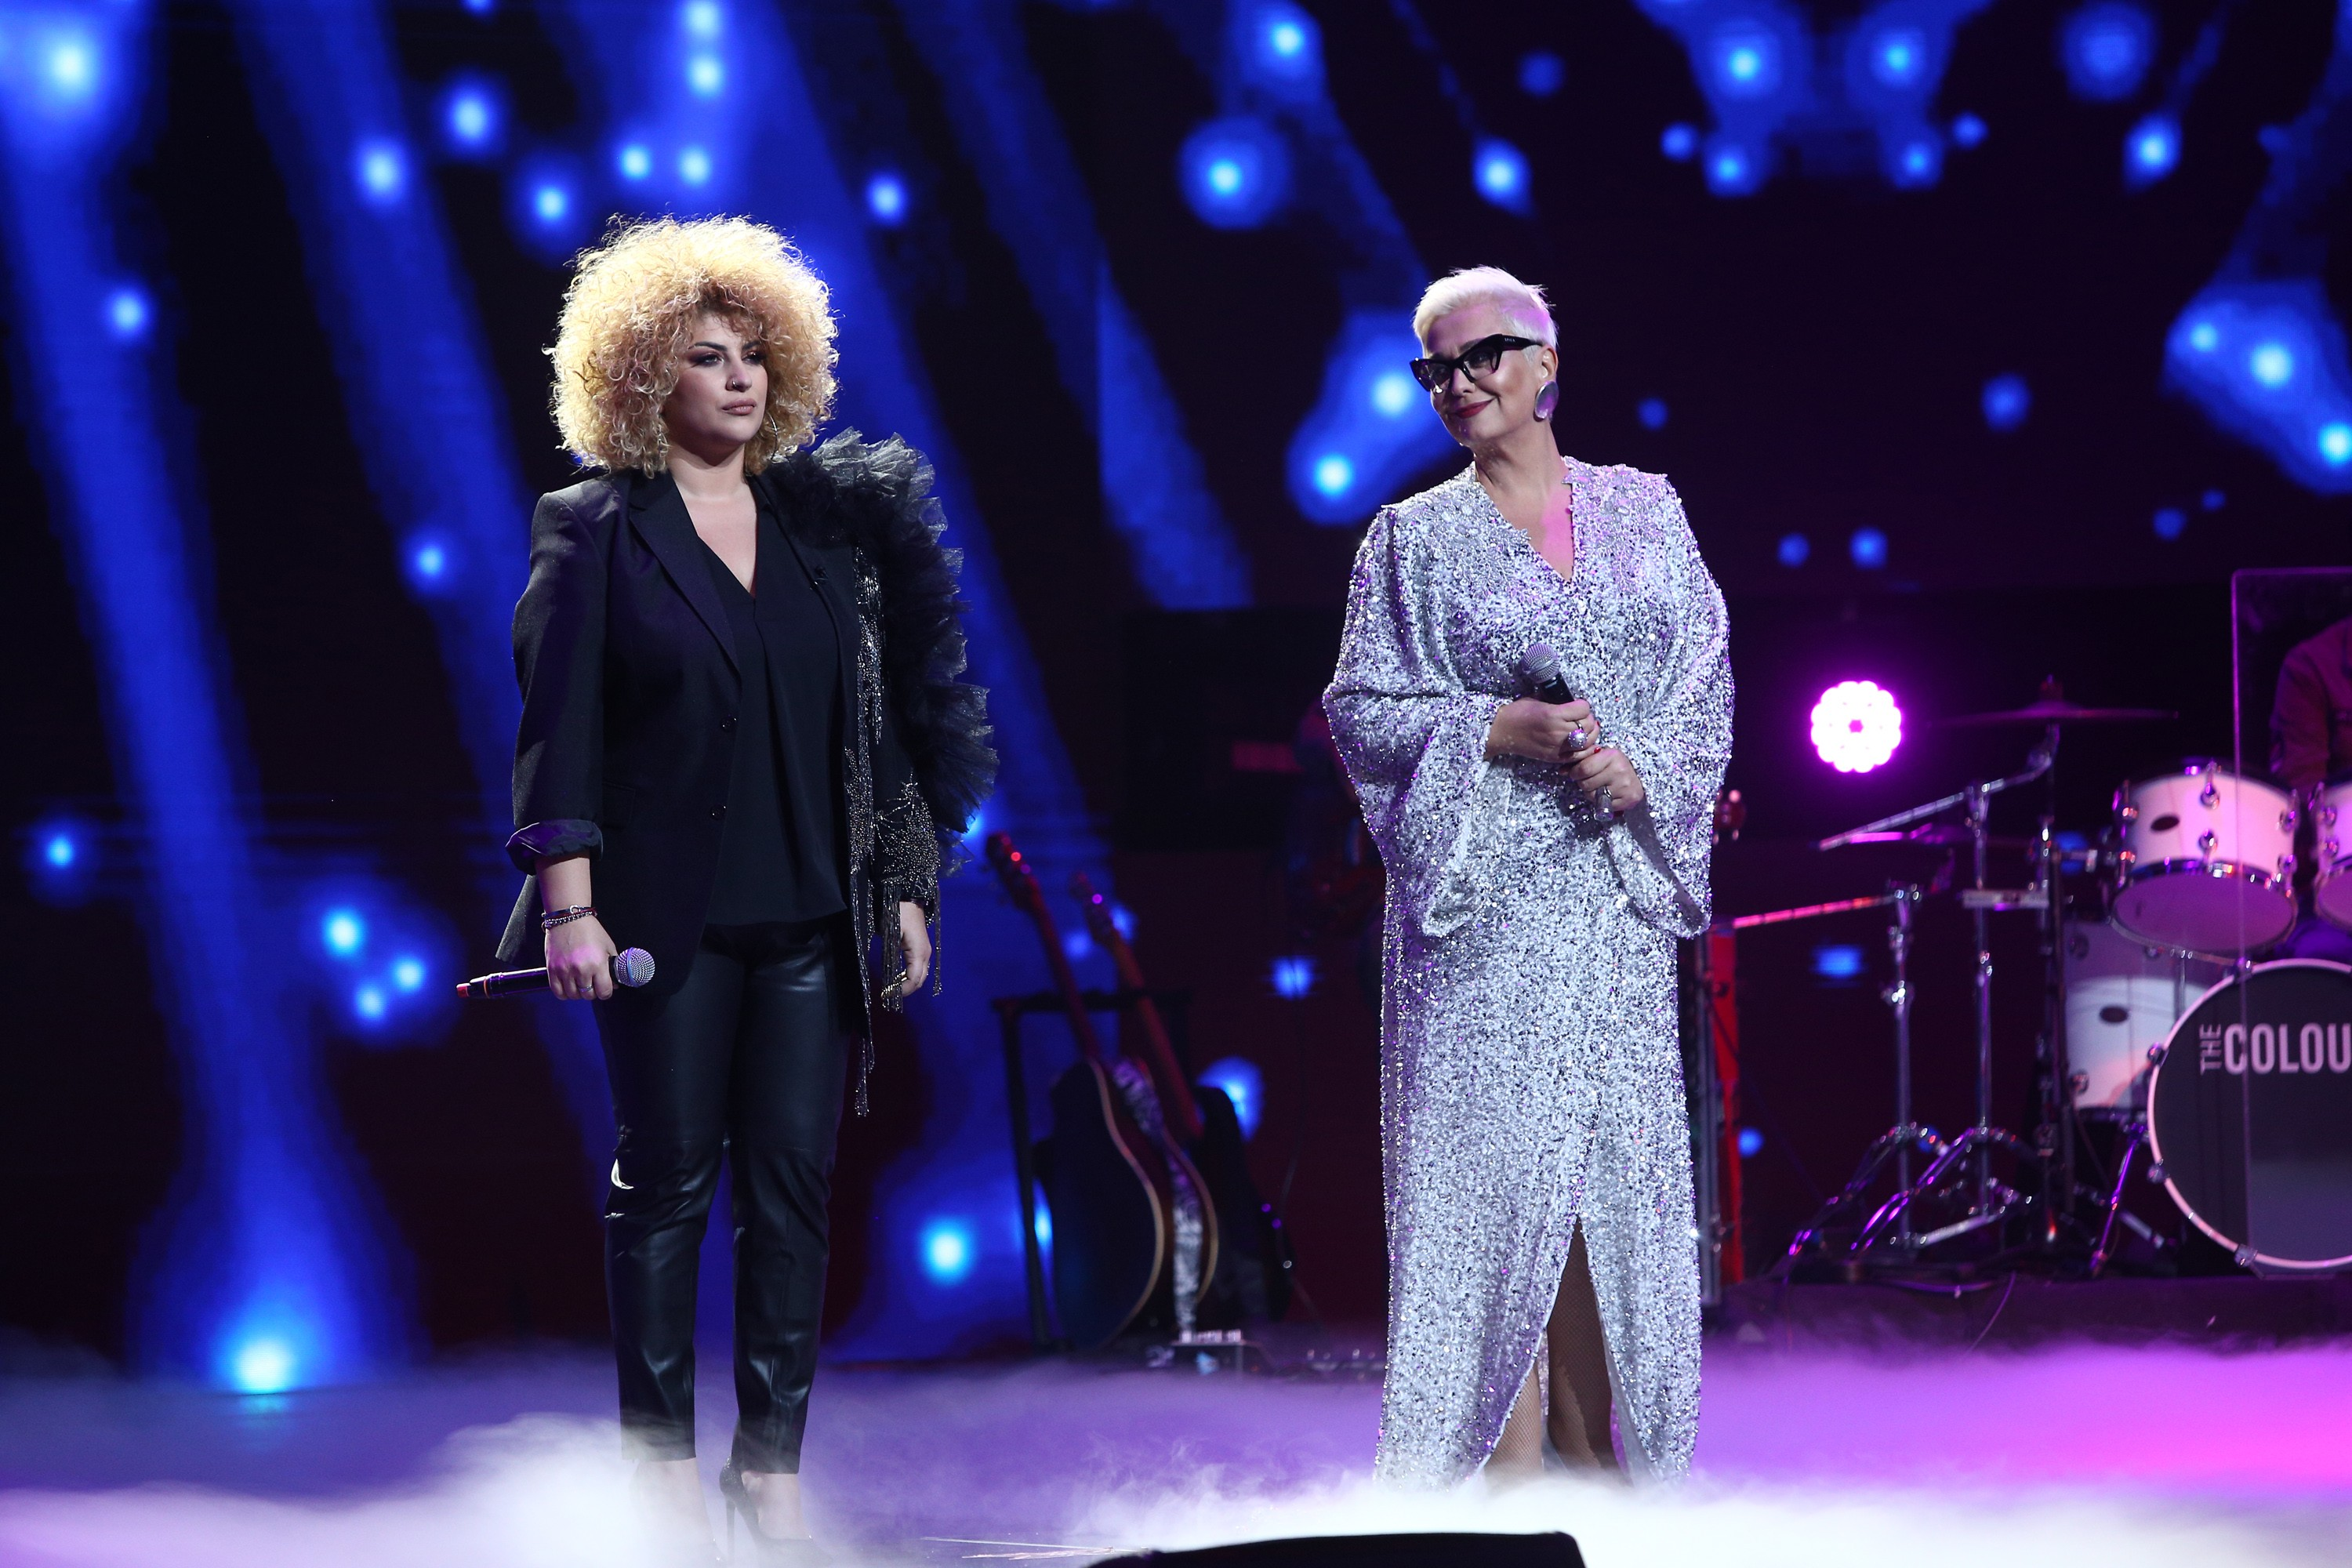 Finala X Factor 2020: Sonia Mosca & Monica Anghel - The Prayer